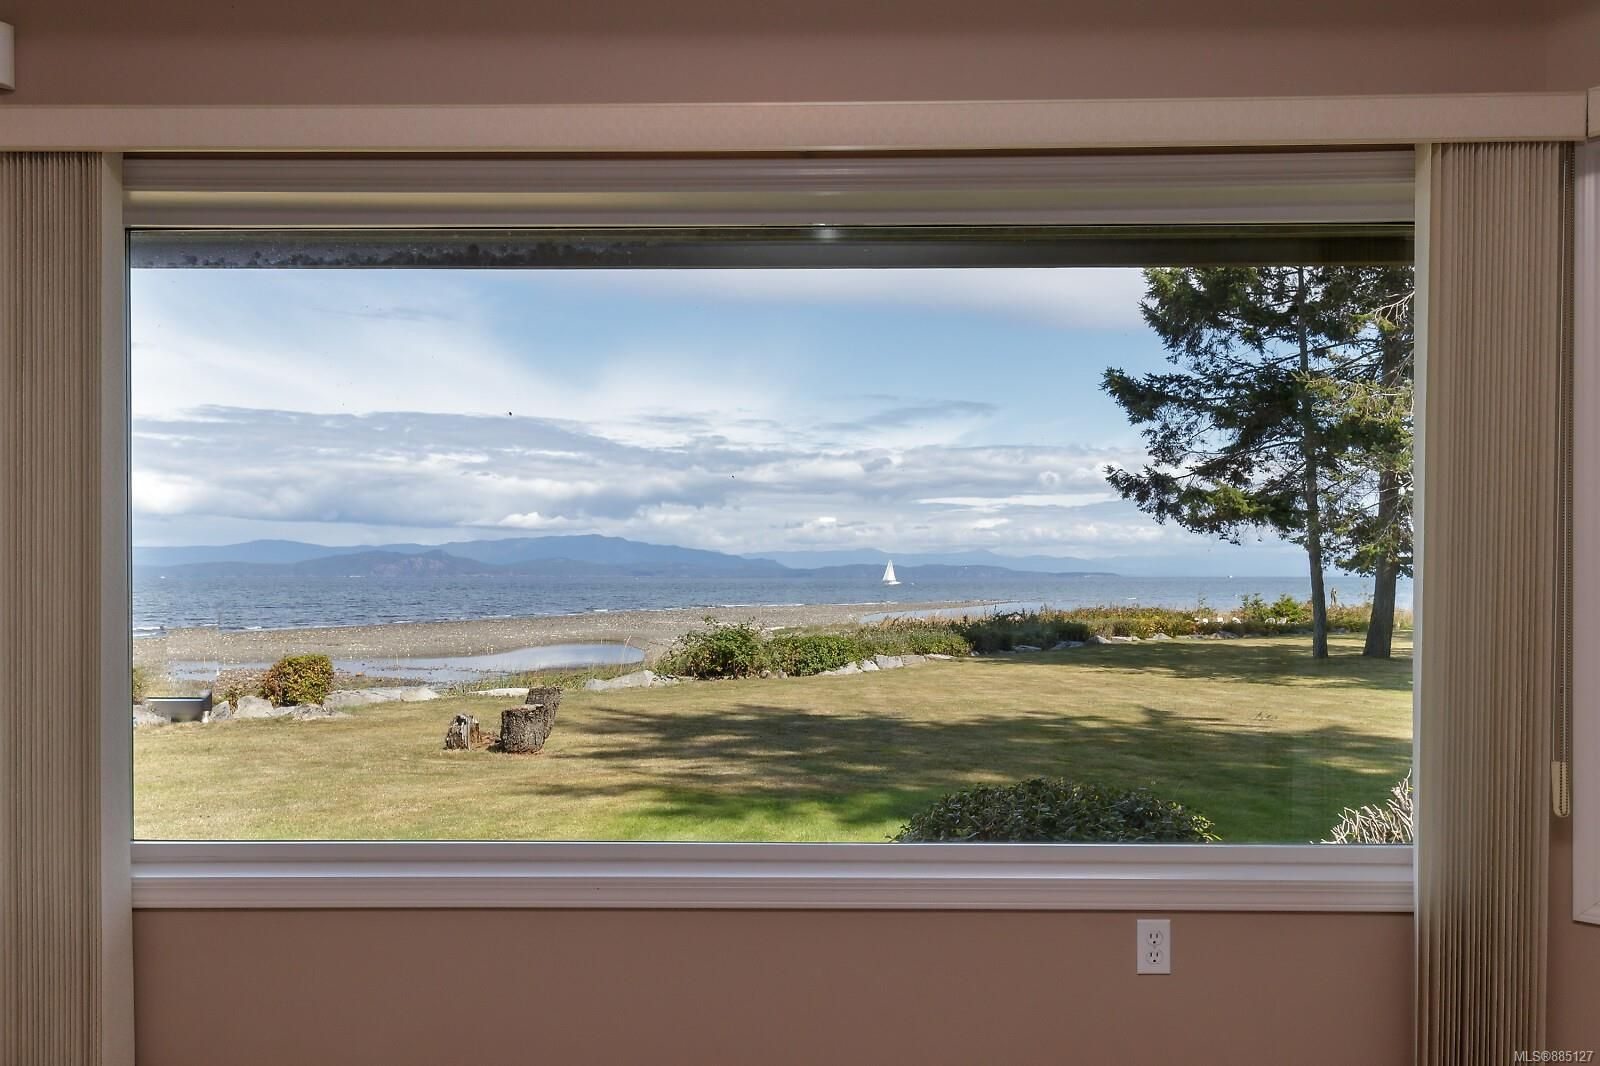 Photo 3: Photos: 26 529 Johnstone Rd in : PQ French Creek Row/Townhouse for sale (Parksville/Qualicum)  : MLS®# 885127